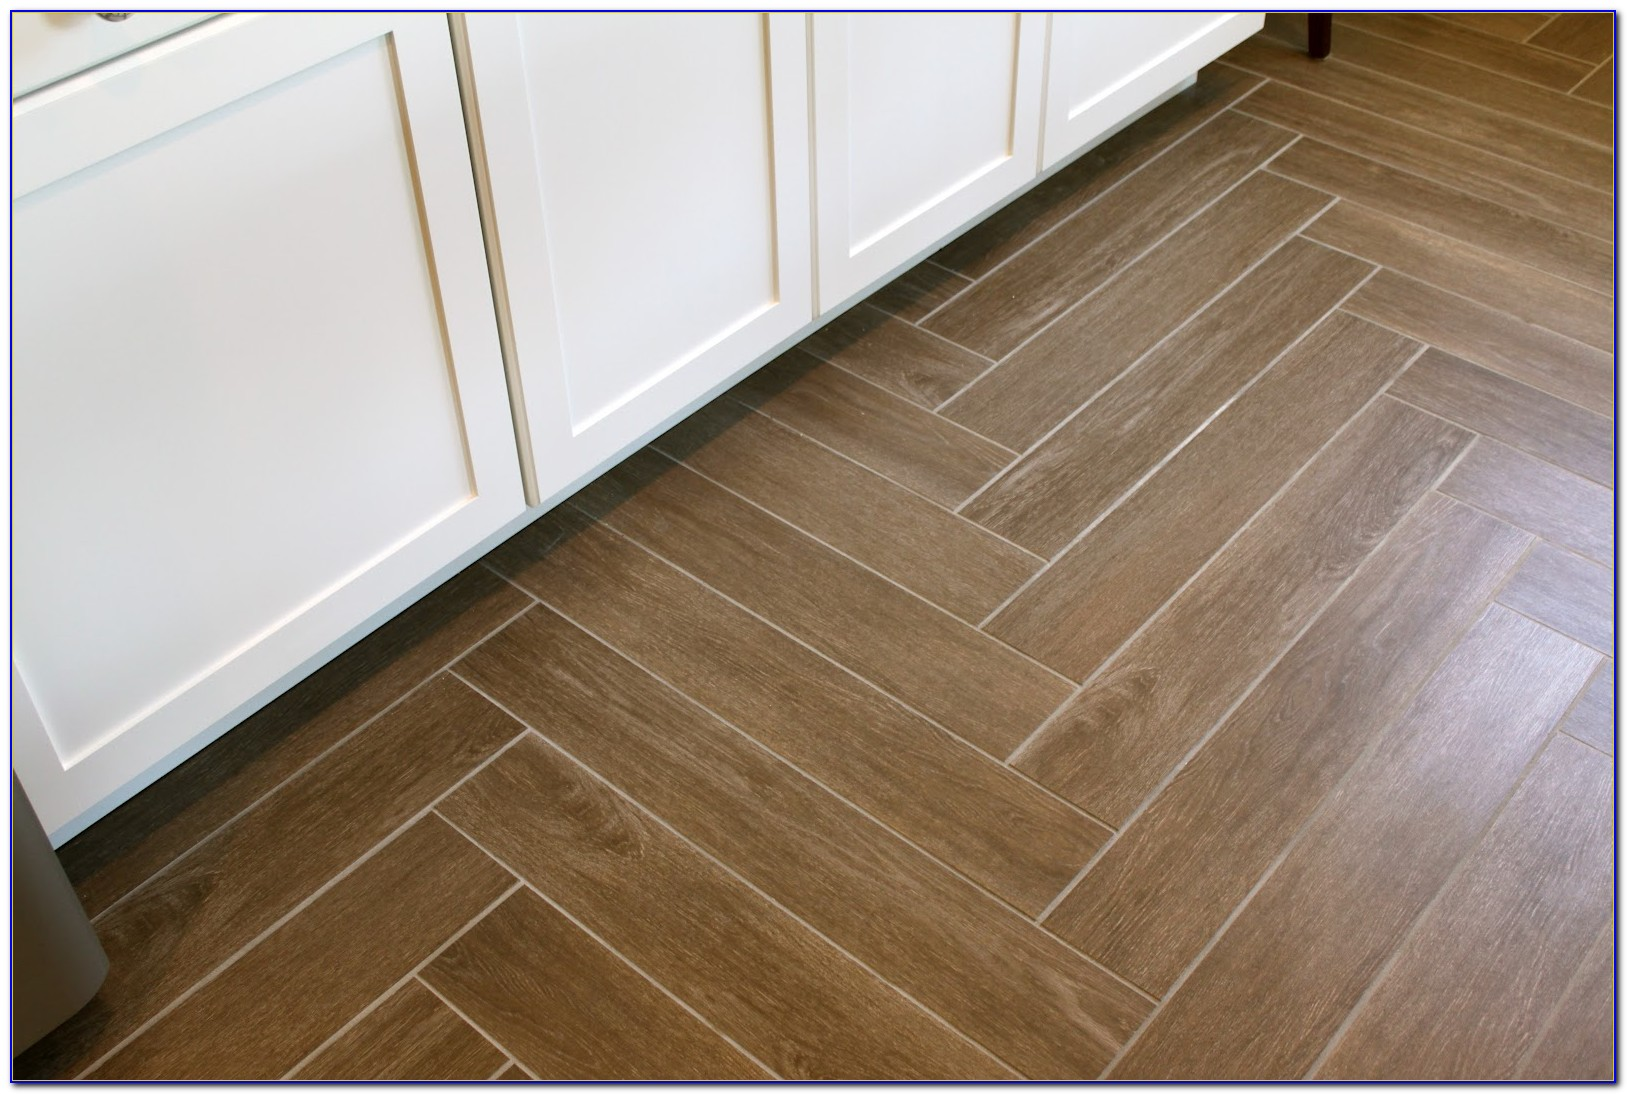 How To Lay Herringbone Pattern Tile Floor